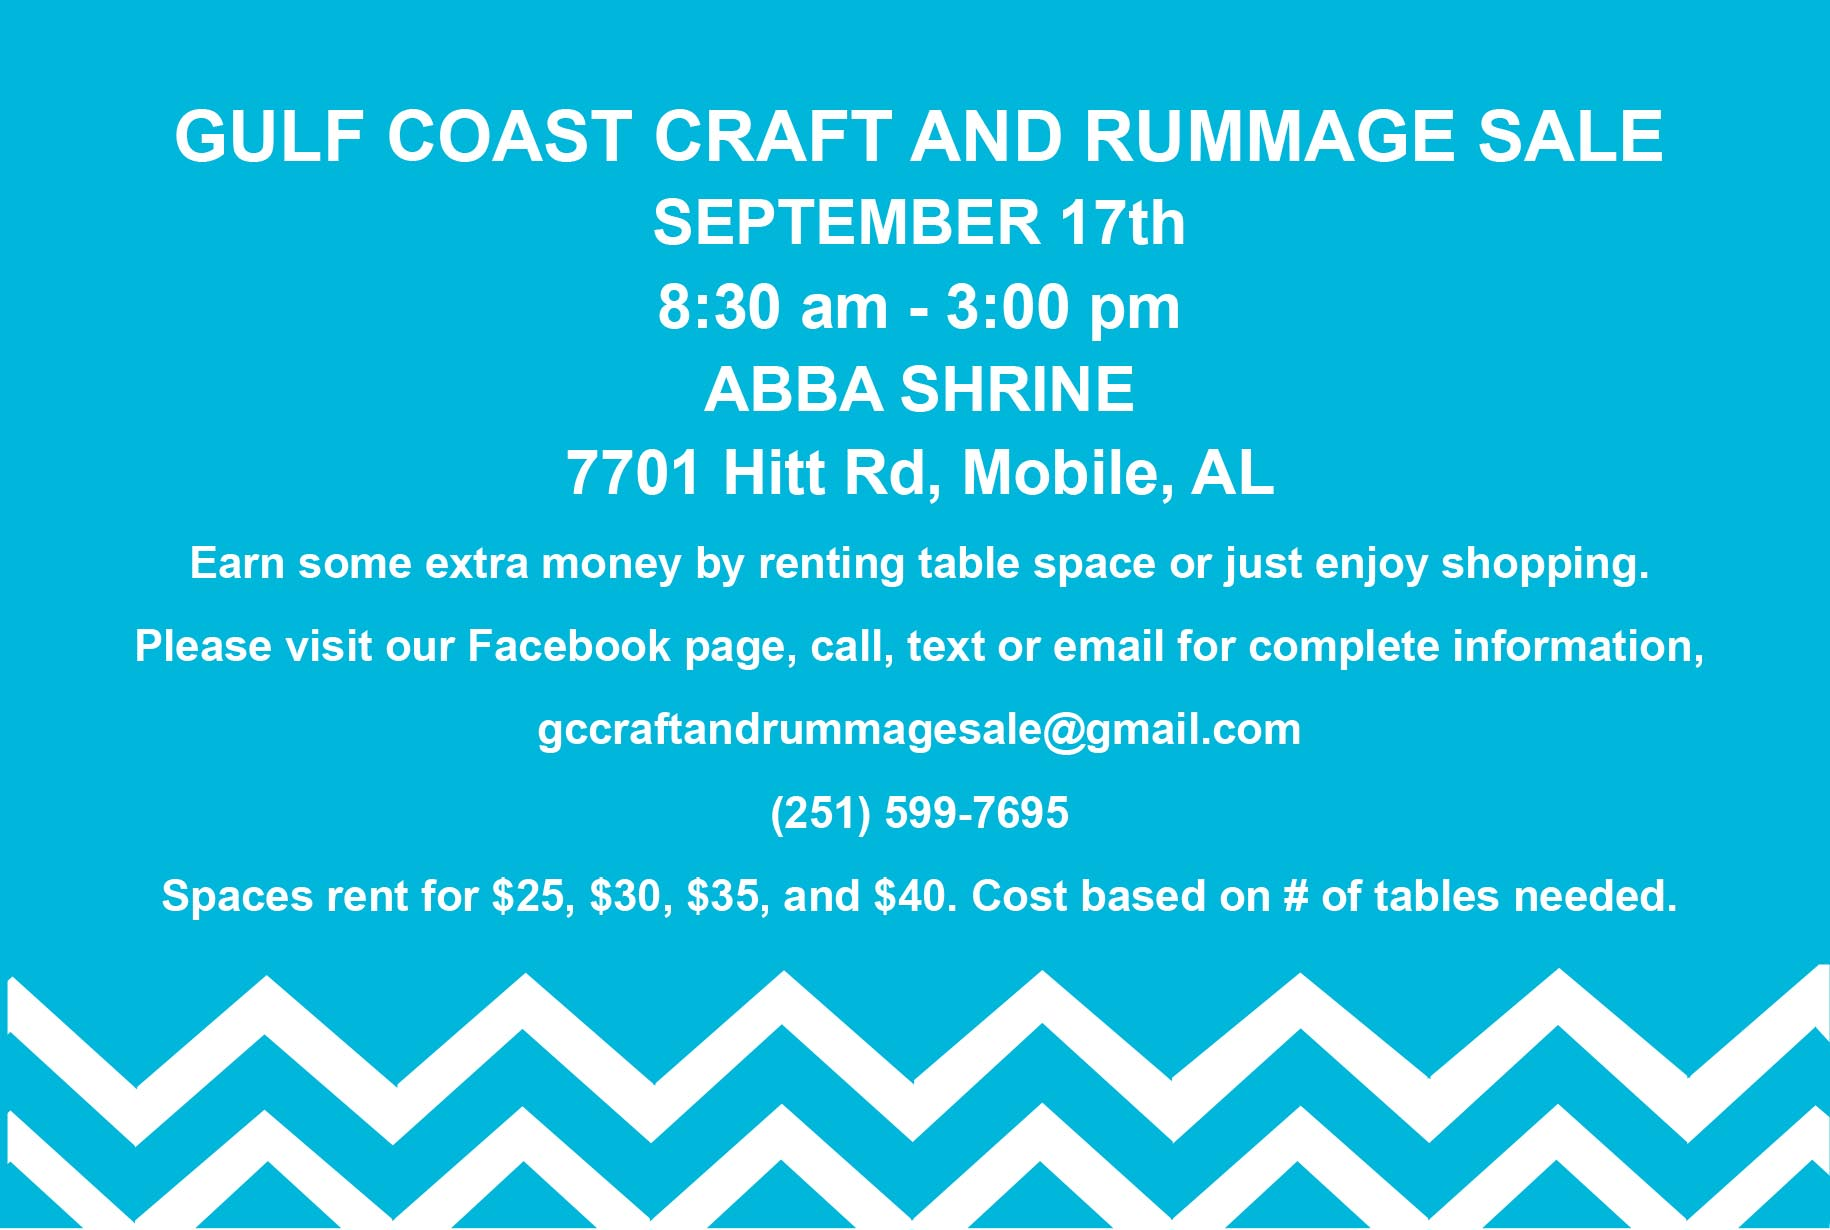 Gulf Coast Craft & Rummage Postcard